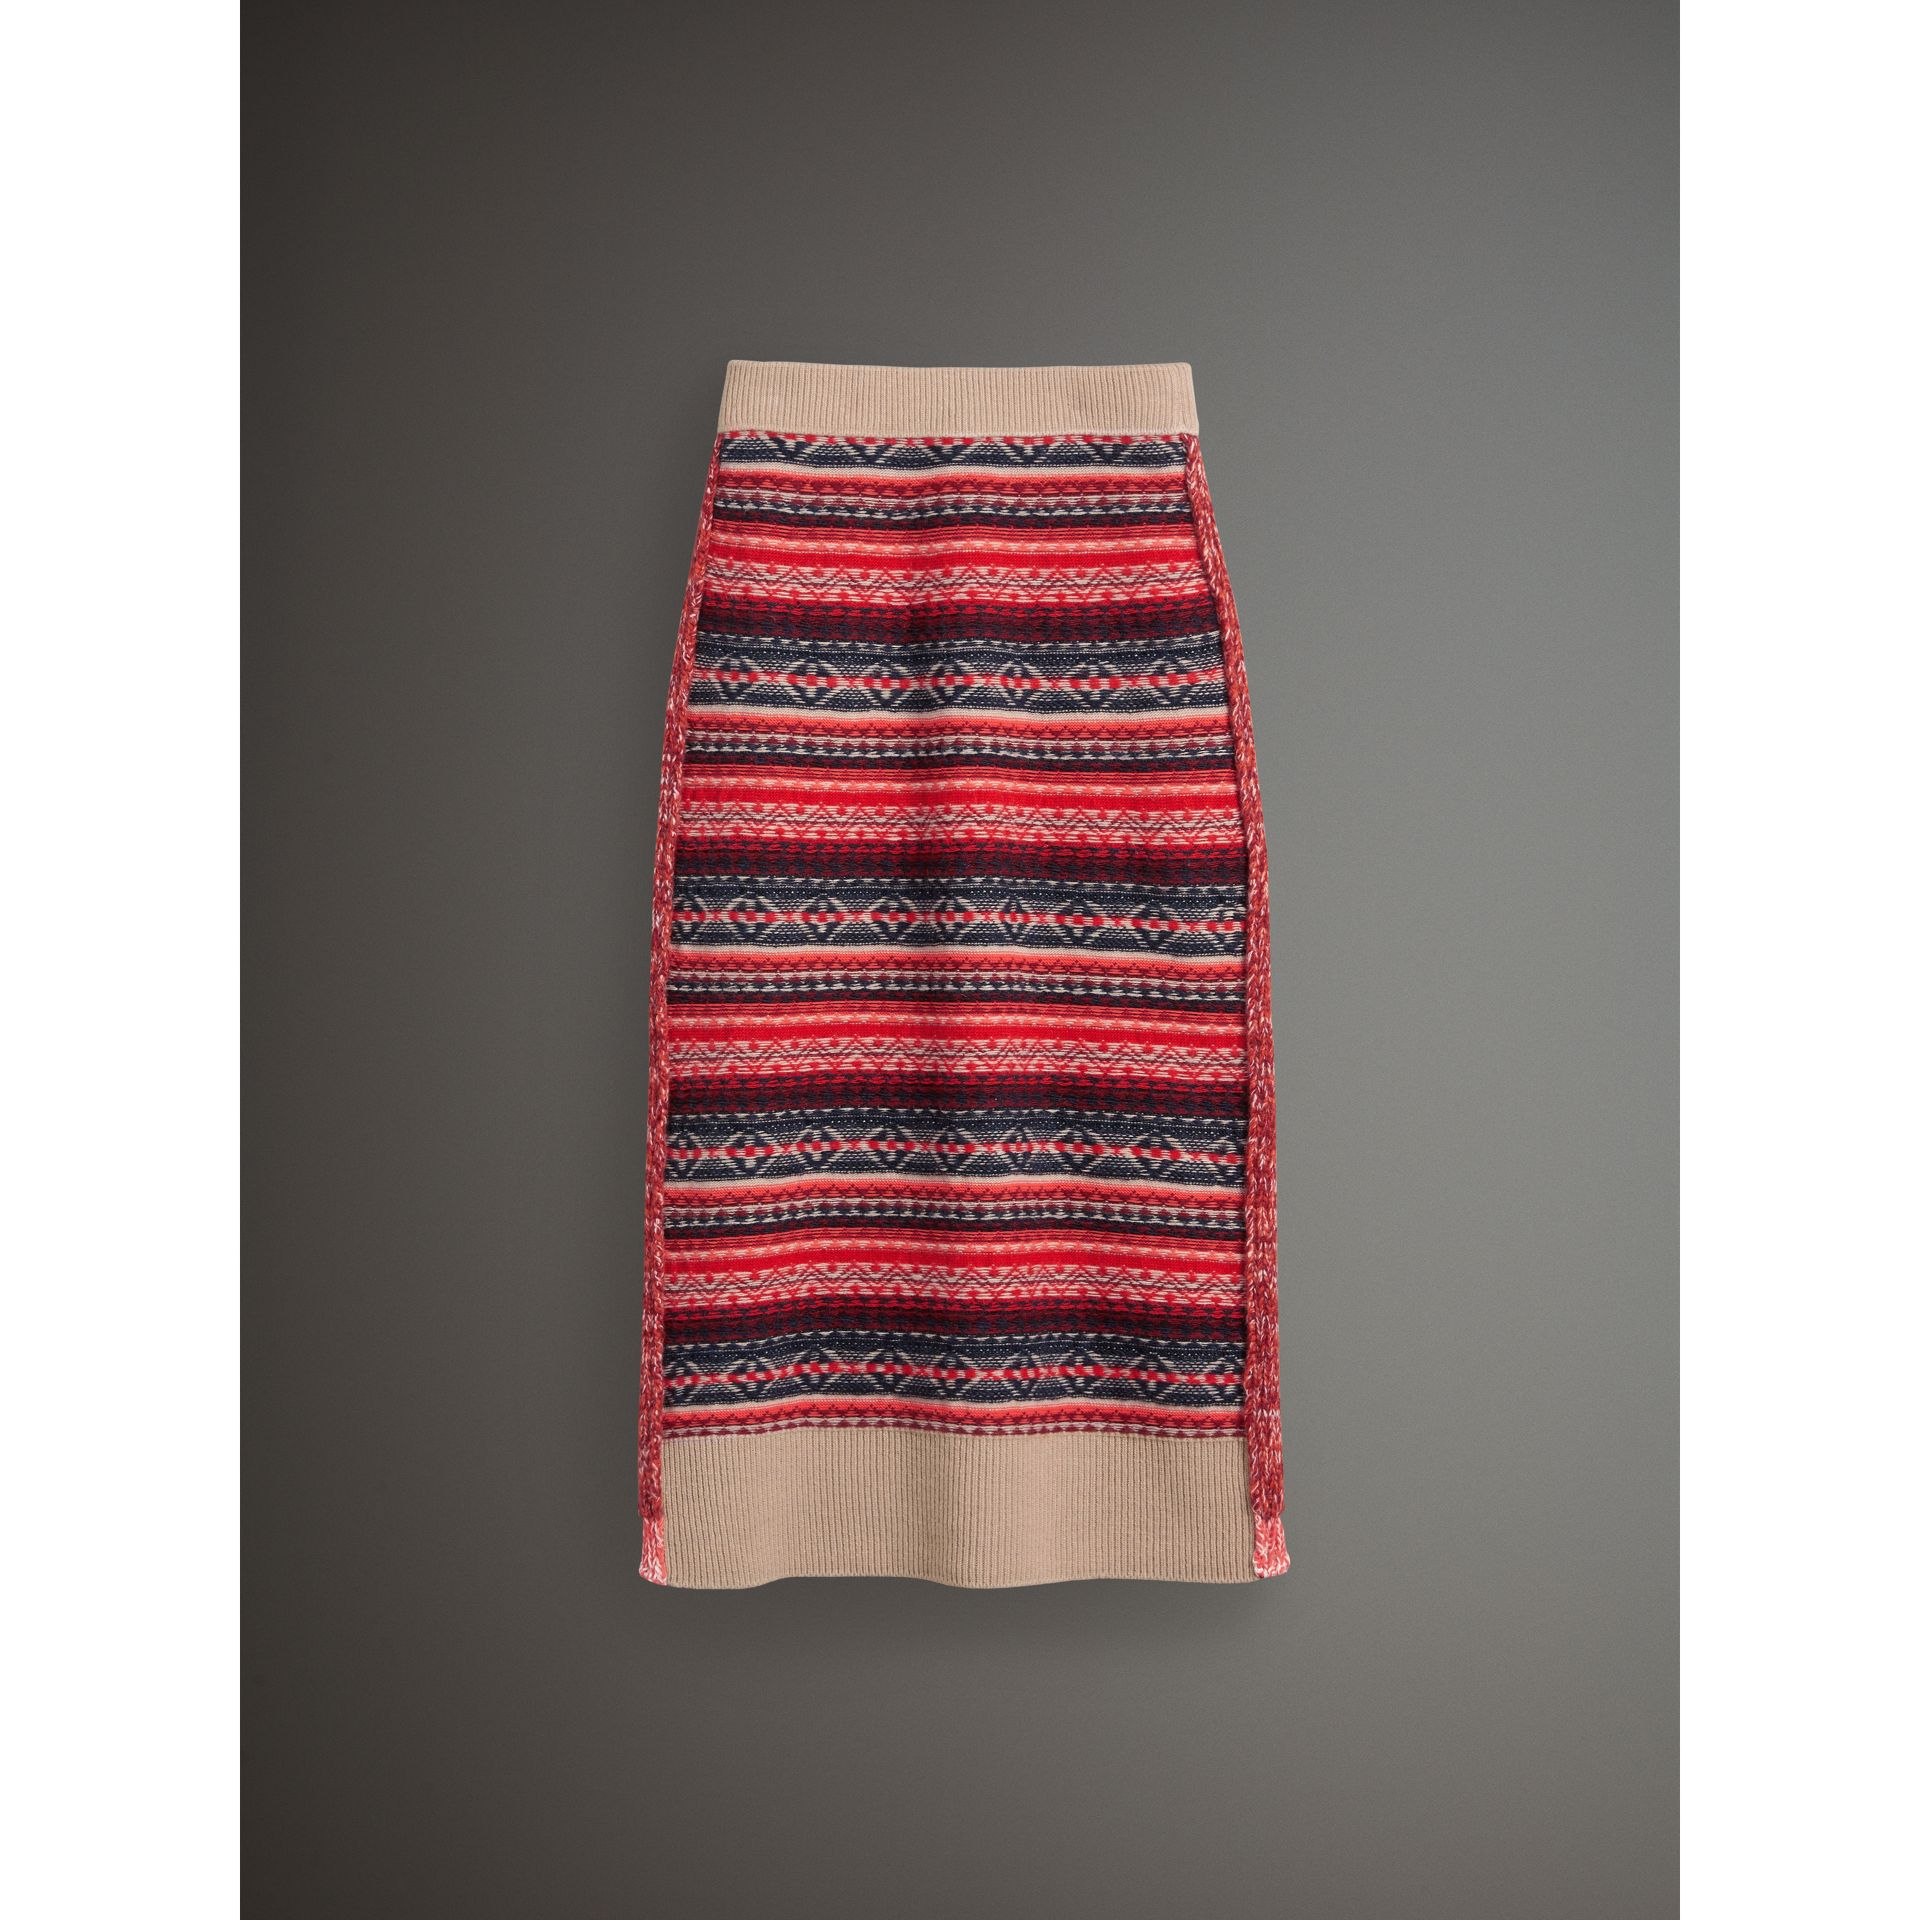 Fair Isle and Cable Knit Wool Cashmere Blend Skirt in Multicolour - Women | Burberry - gallery image 4